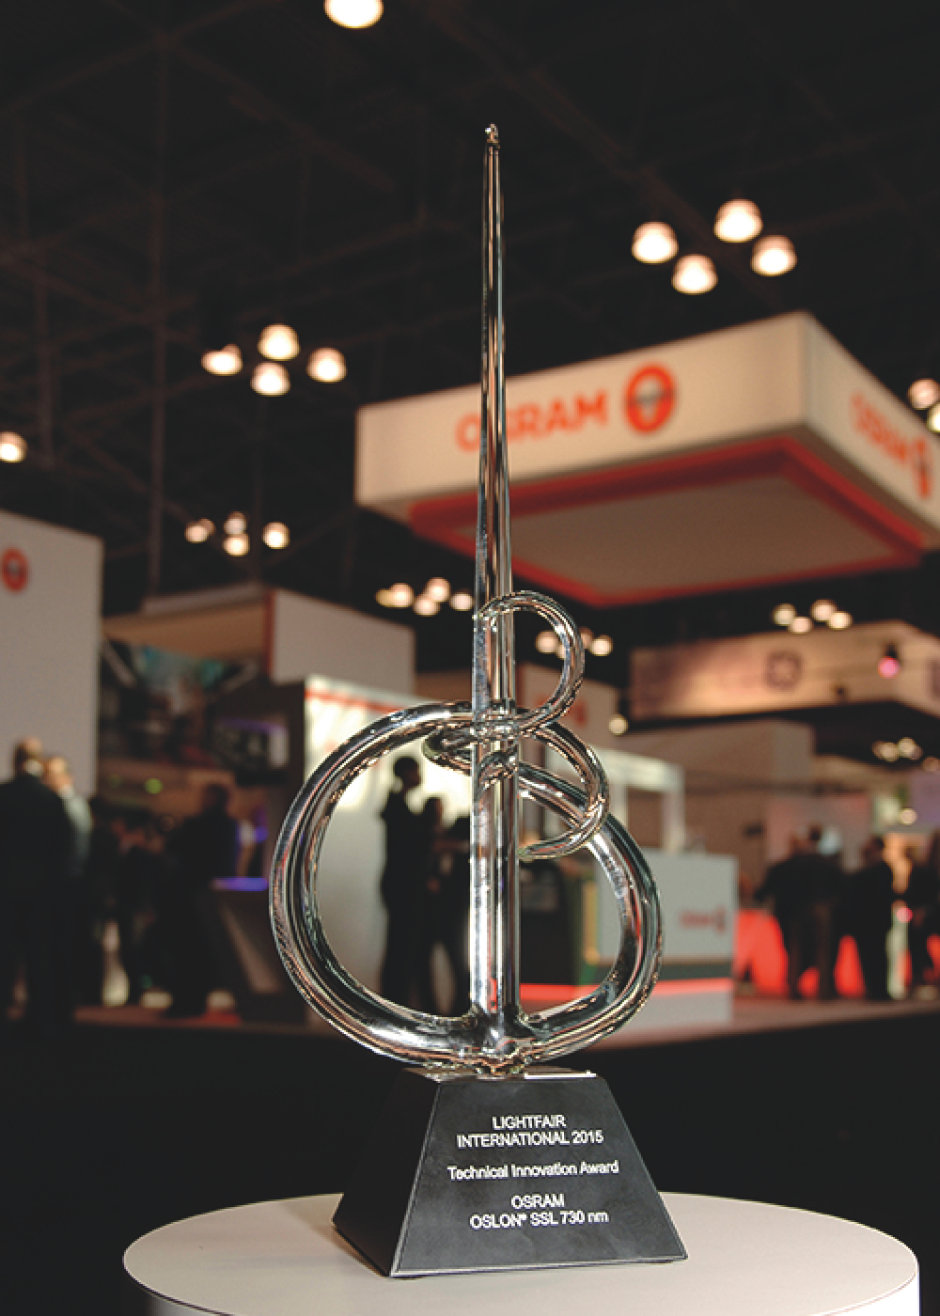 Osram Oslon SSL 730nm wins two innovation awards at LIGHTFAIR International 2015